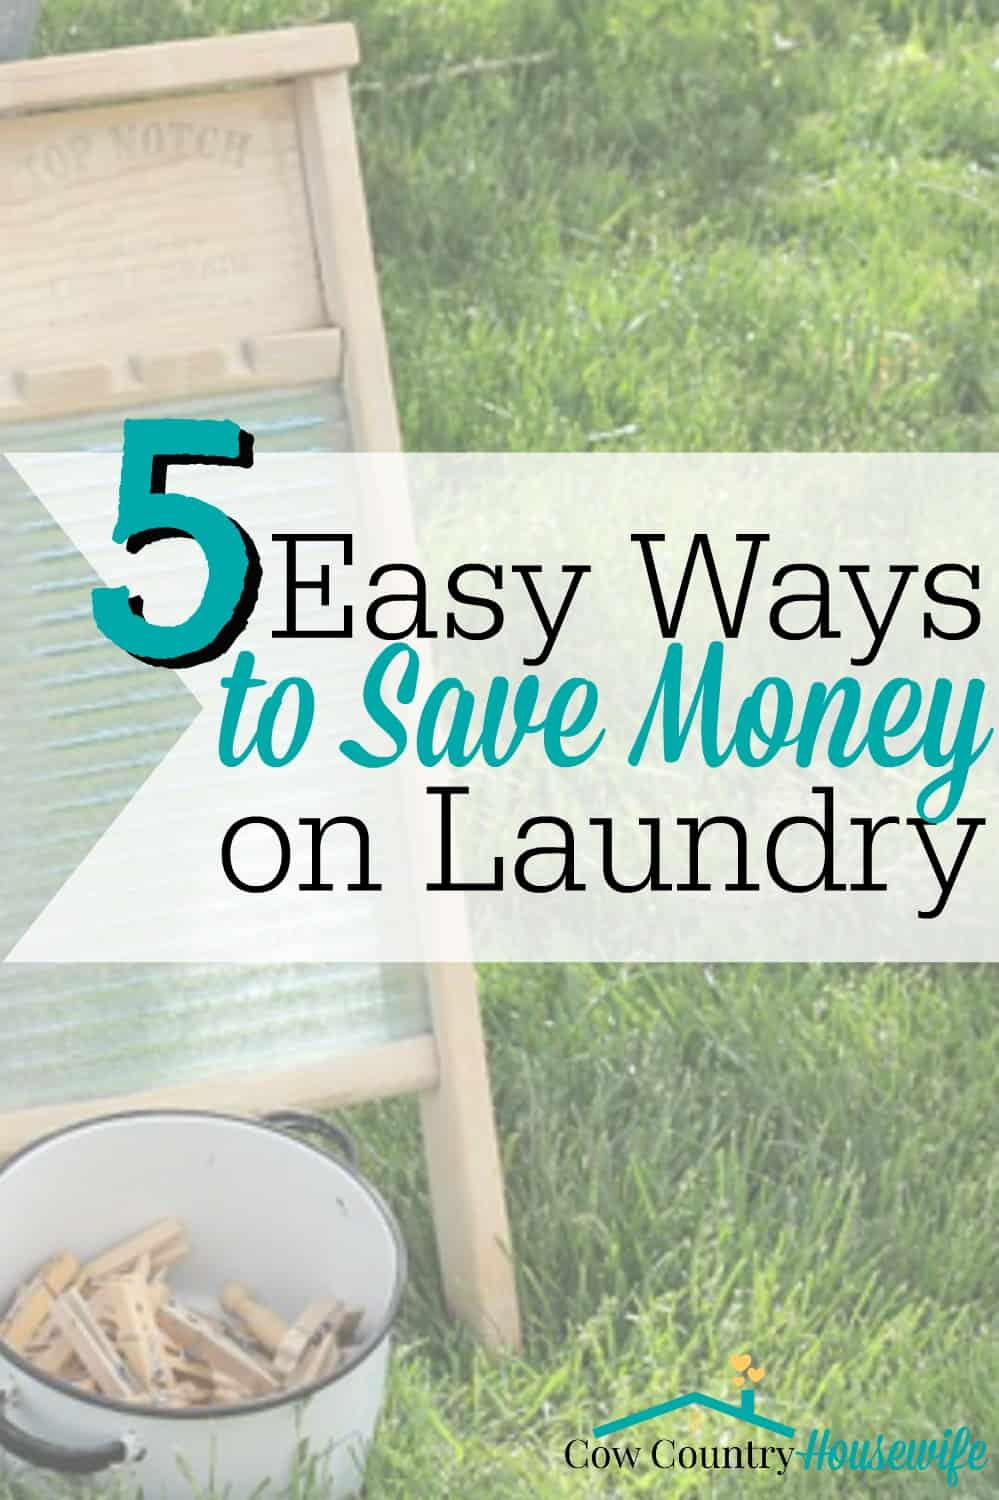 Looking to save money on your laundry? Trying to get rid of chemicals in your house? Seriously, these are the easiest ways ever to cut back or almost completely get rid of your laundry spending. This is all coming from the woman who hasn't spent any money on laundry in a year for a family of five!